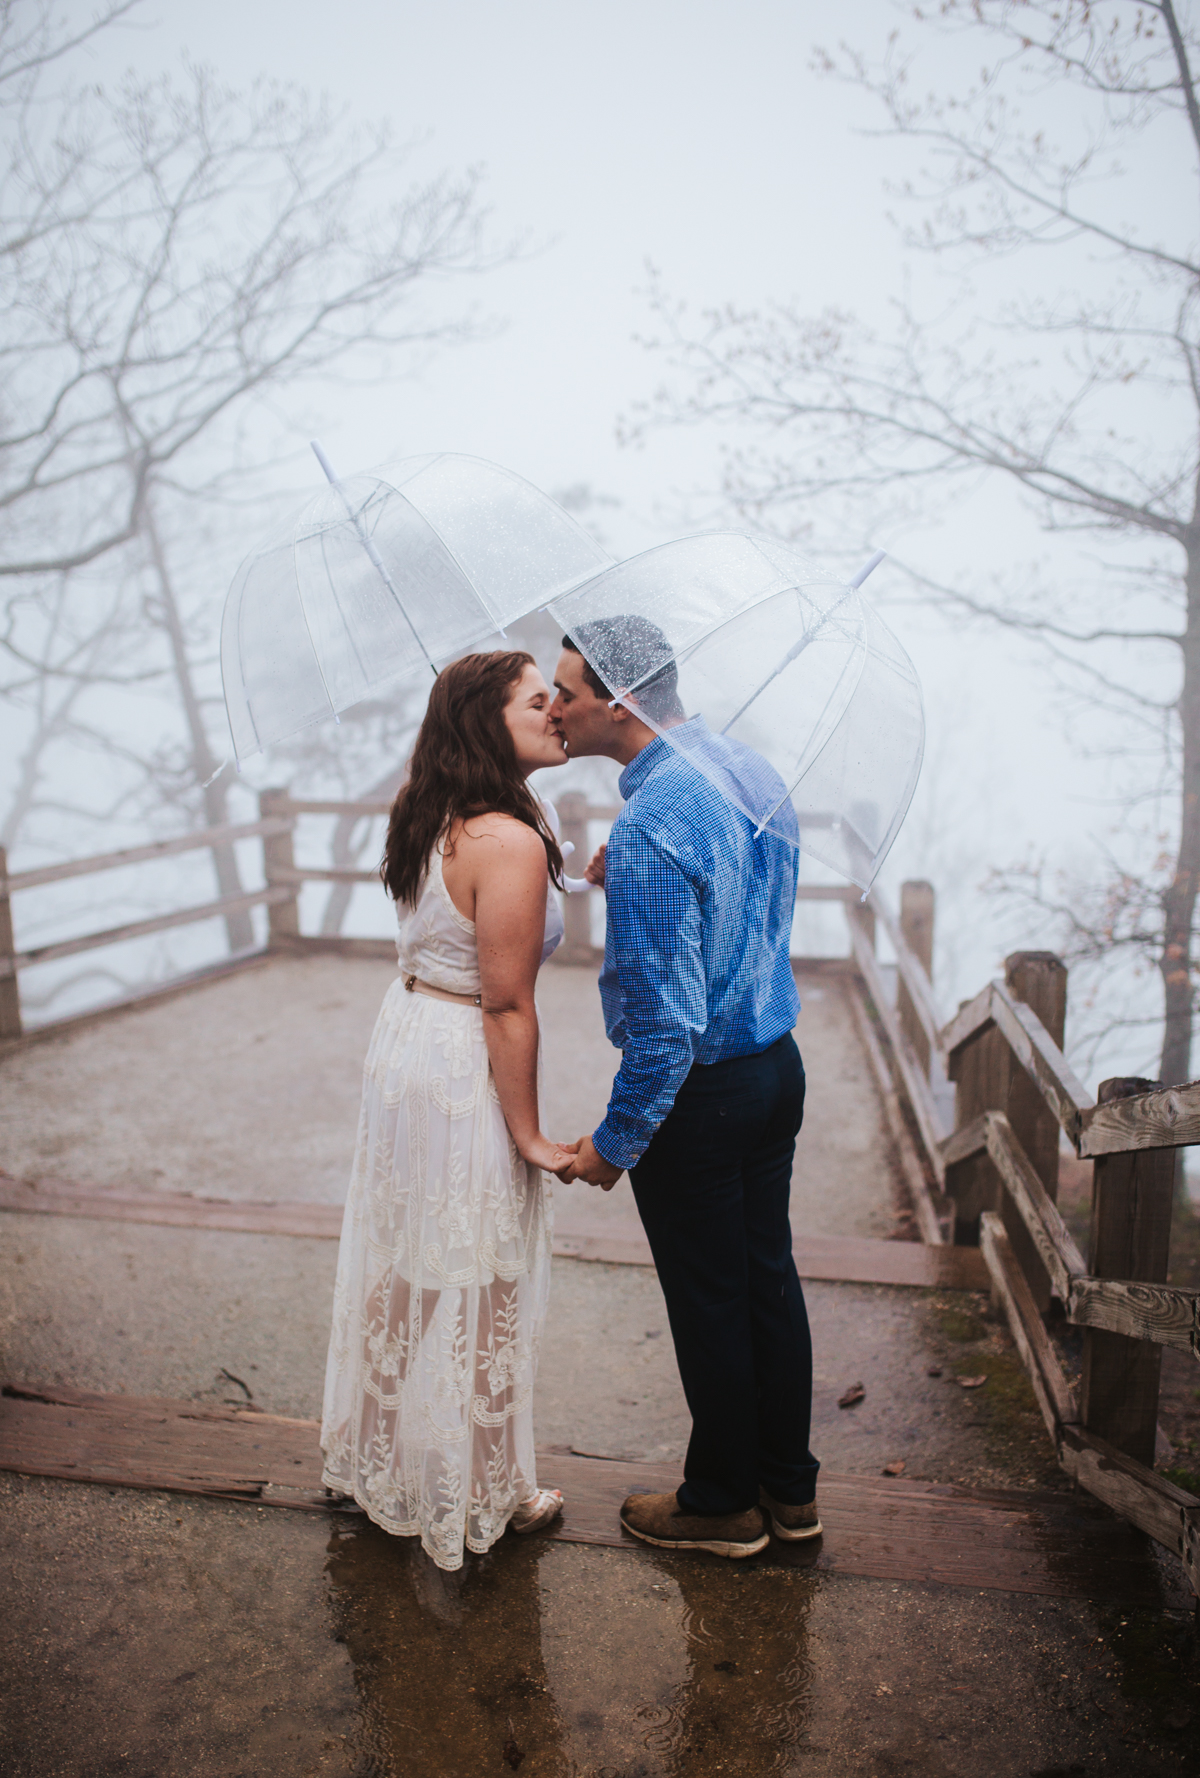 Rainy Engagement Session at Pilot Mountain by Kayli LaFon Photography